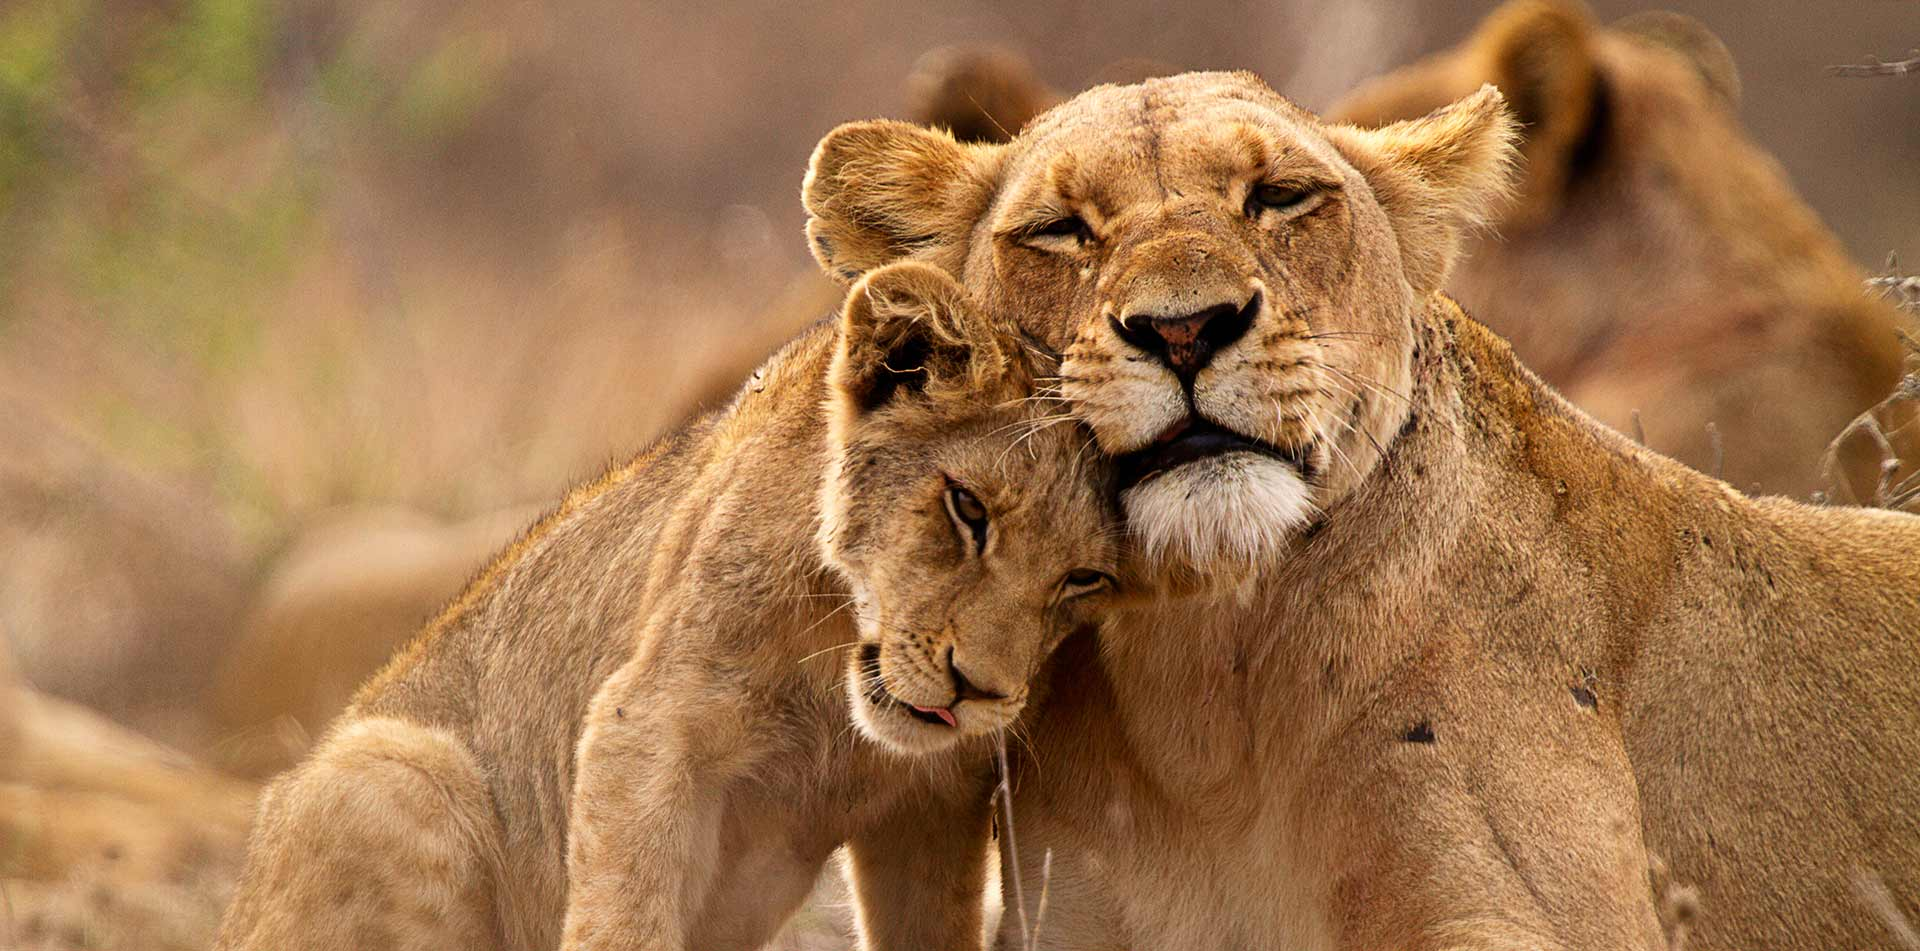 Lioness and Cub, South Africa